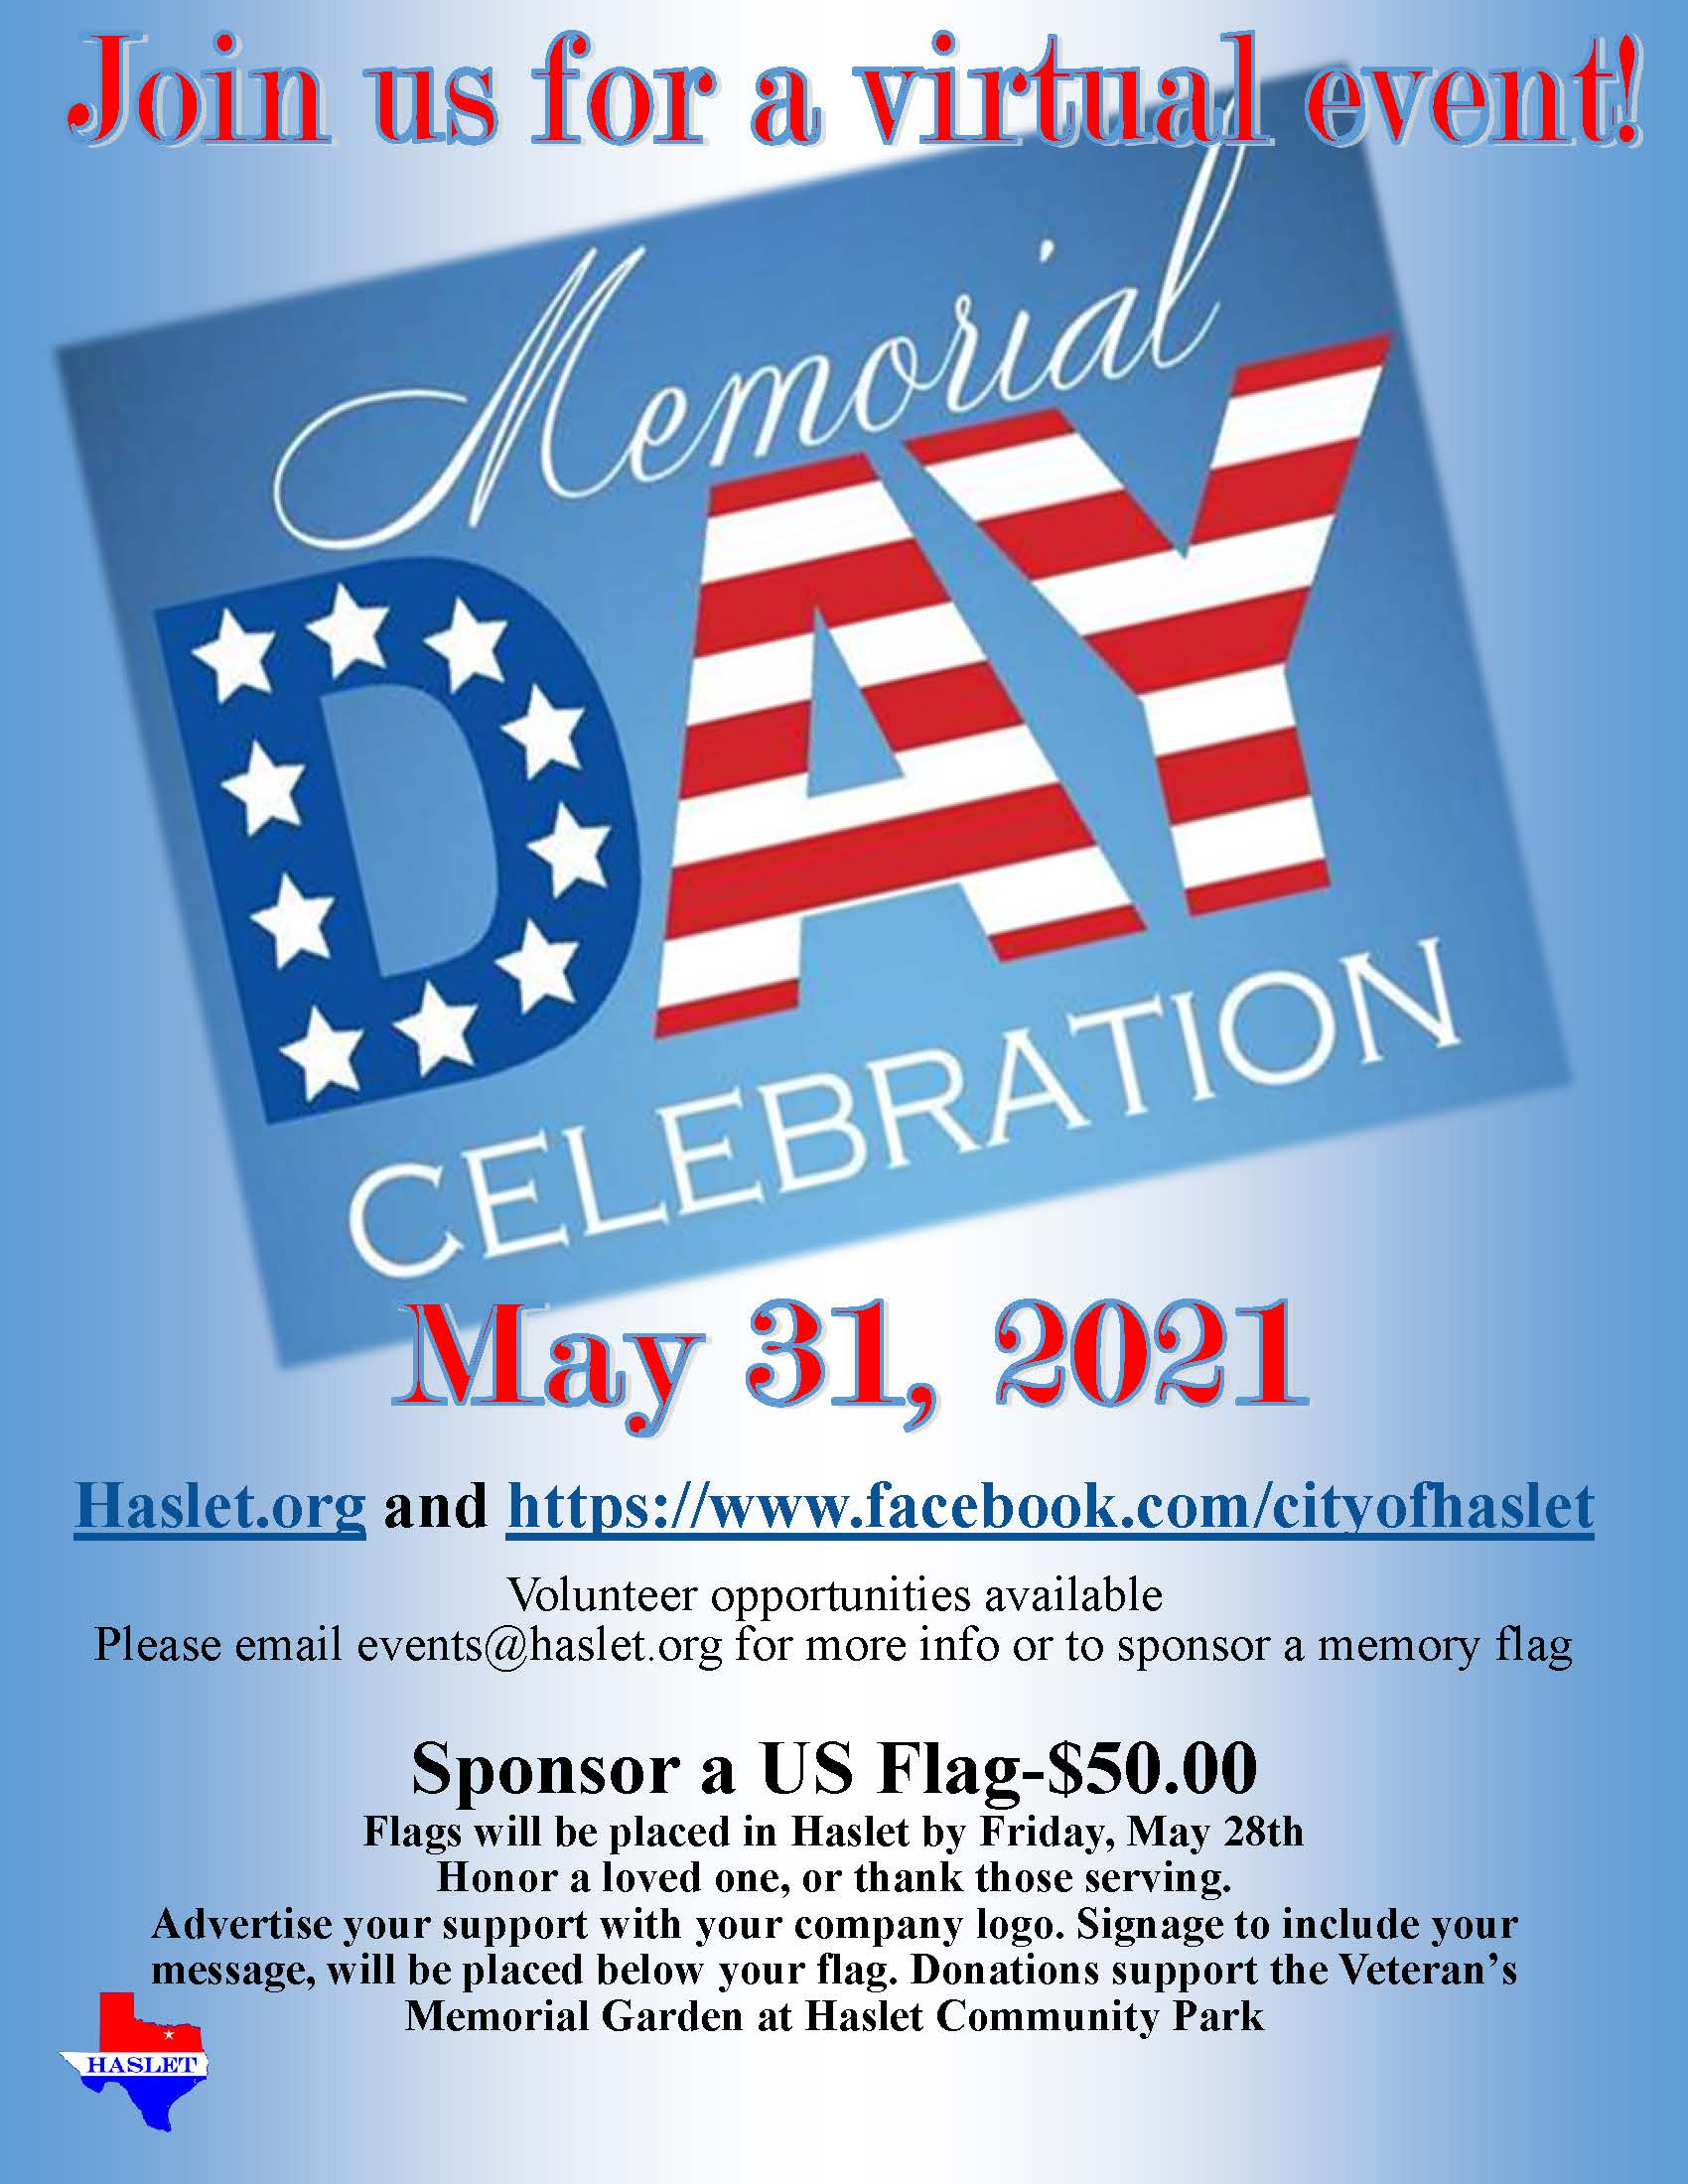 2020 Memorial Day Event, May 25